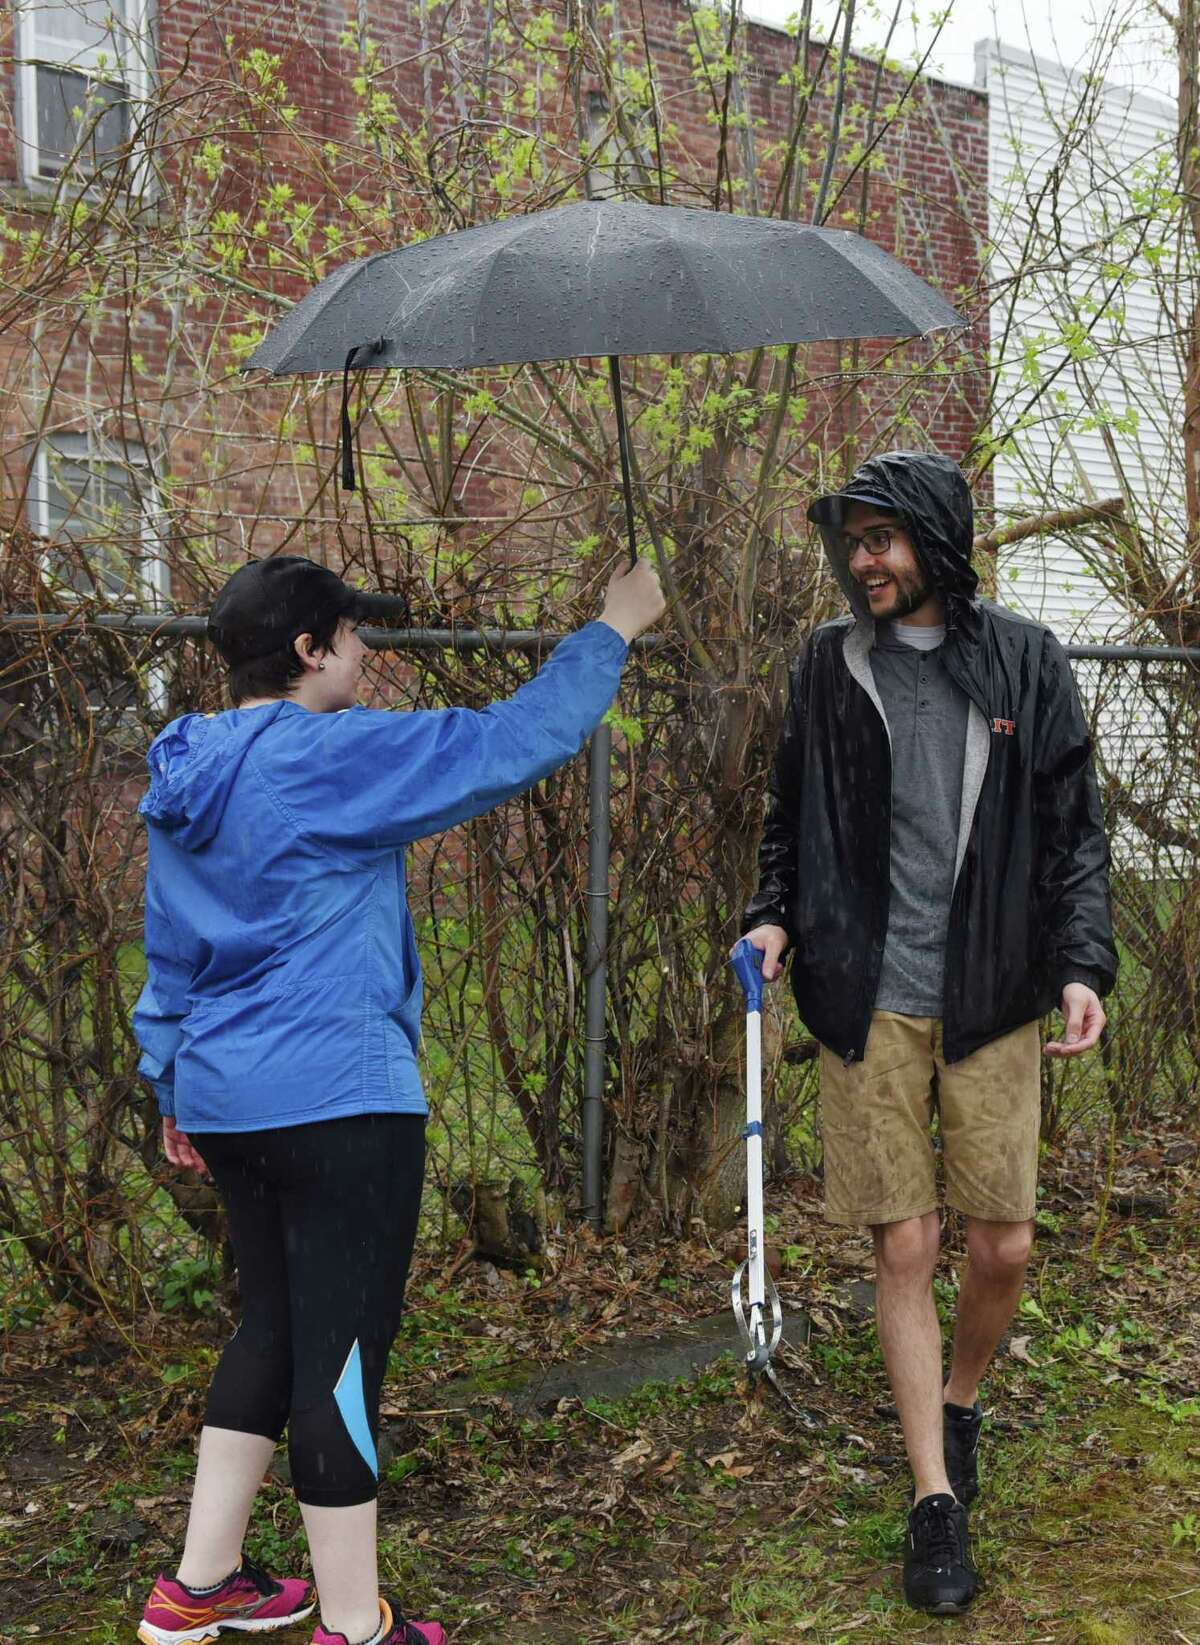 Keep the umbrella close. Forecasters expect the Capital Region will be hit with rain on Friday, Saturday and Sunday. Snow could fall in the region's mountainous areas too. In this photograph, Holly McMahon holds up an umbrella while her and Dana Wright clean up trash in the rain on Saturday, April 20, 2019 at the Lots of Hope site in Troy, NY. (Phoebe Sheehan/Times Union)